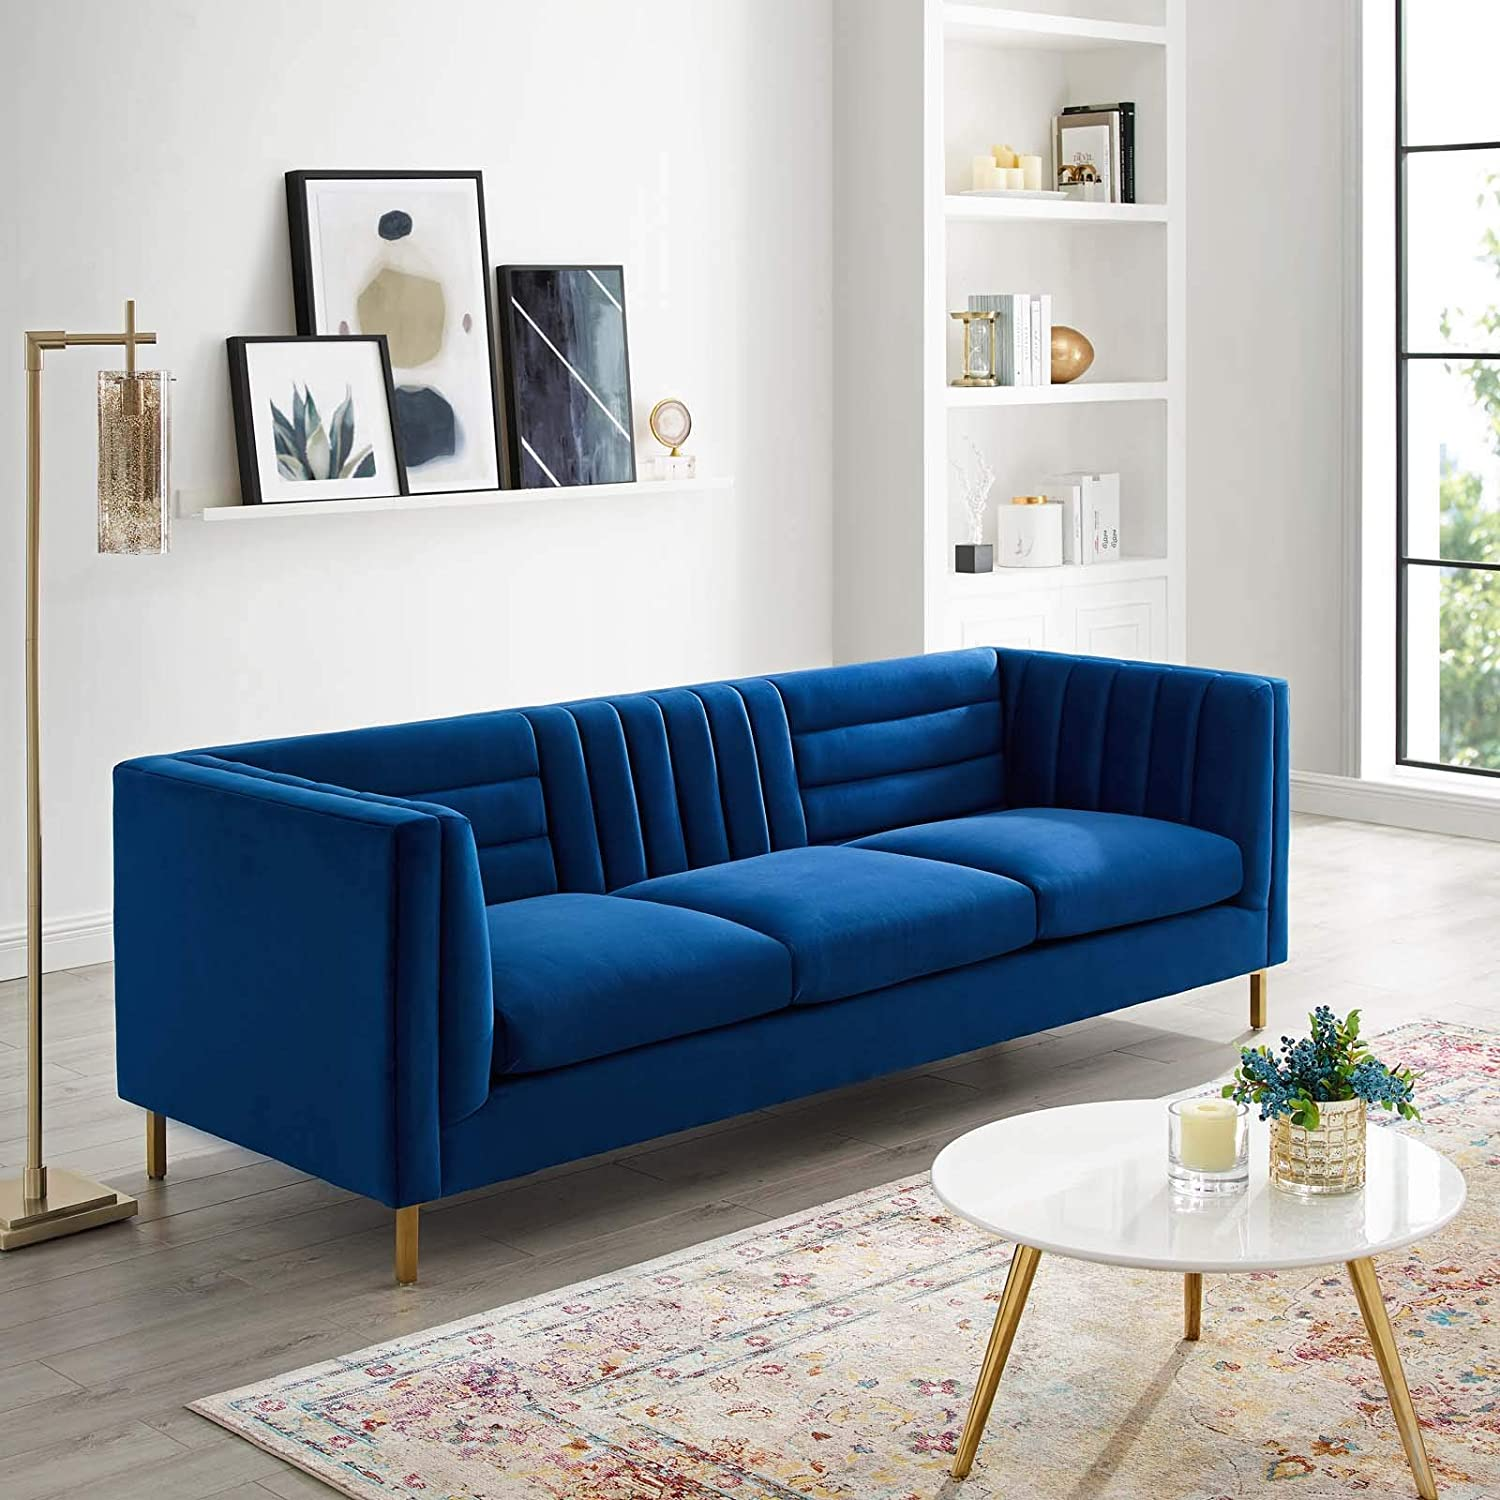 Modway Ingenuity Channel Tufted Large-scale sale Performance with Velvet Gol Challenge the lowest price of Japan ☆ Sofa